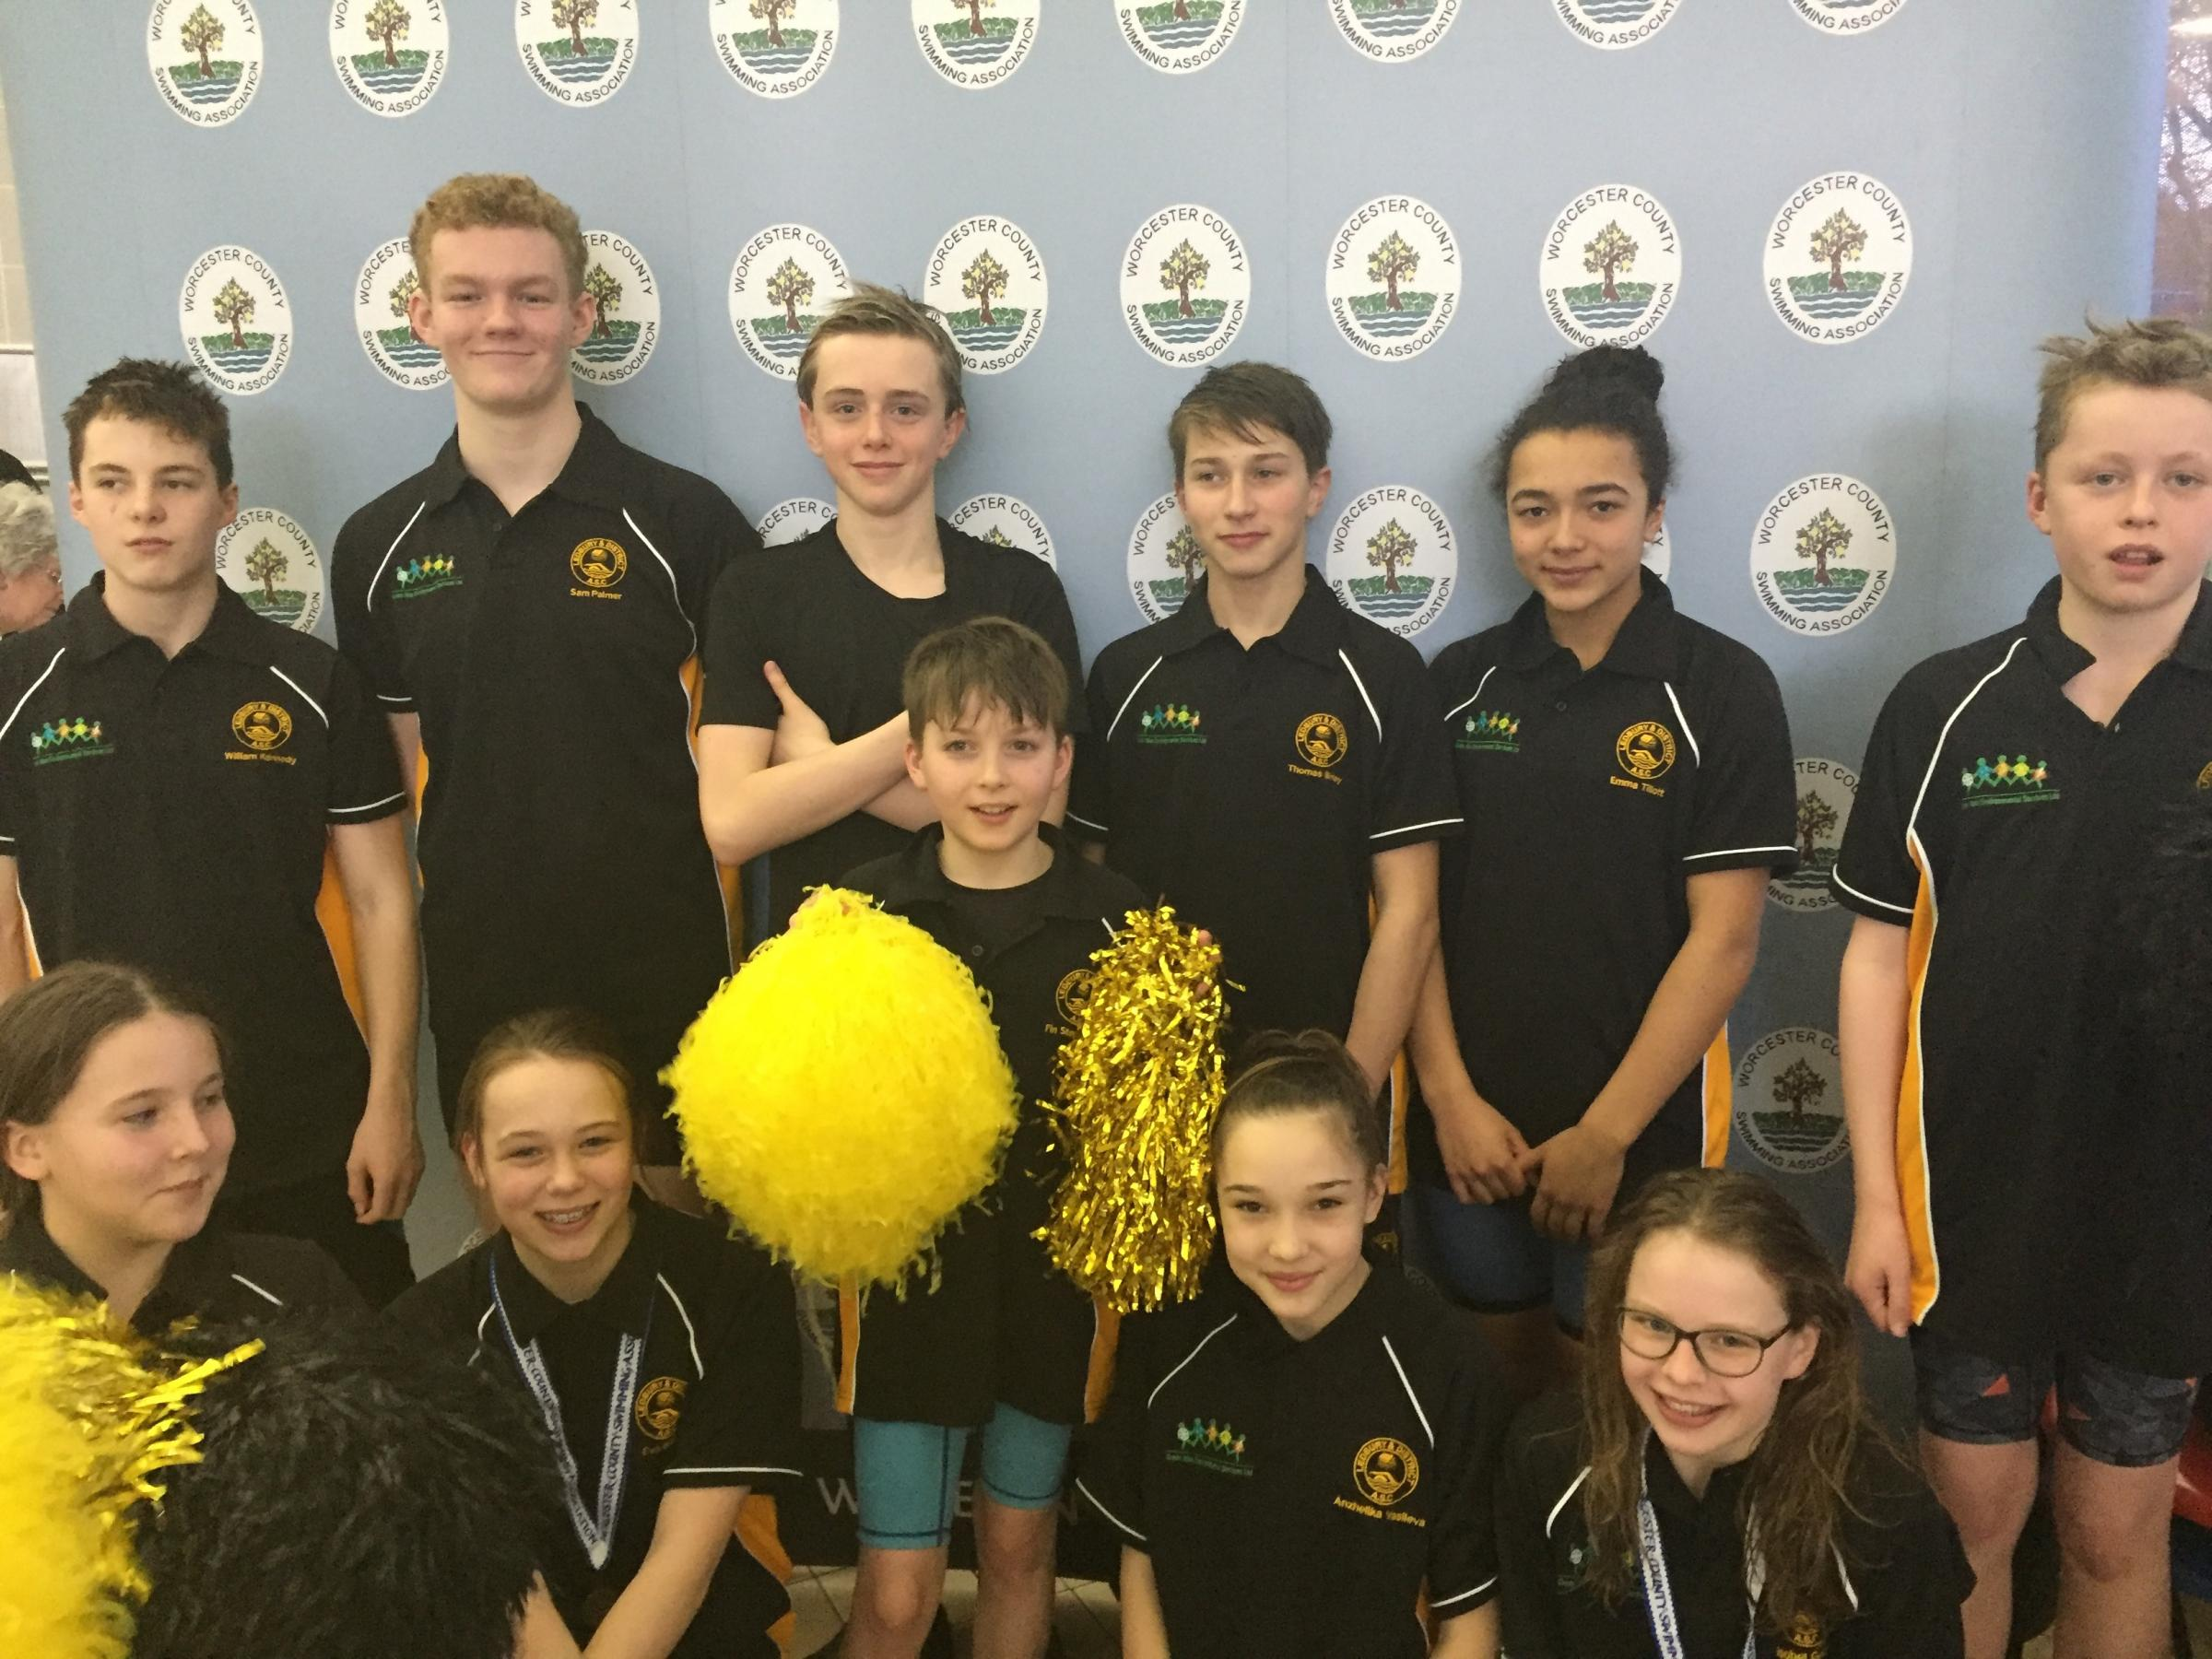 Ledbury's county championship swimmers, back row (left to right): Will Kennedy, Sam Palmer, Oliver Jones, Tom Birley, Emma Tillot and Jacob Gellar. Front: Emily Goggins, Eva Bailey, Fin Stephenson, Angie Vasileva and Isobel Gellar. Picture: REBECCA MA